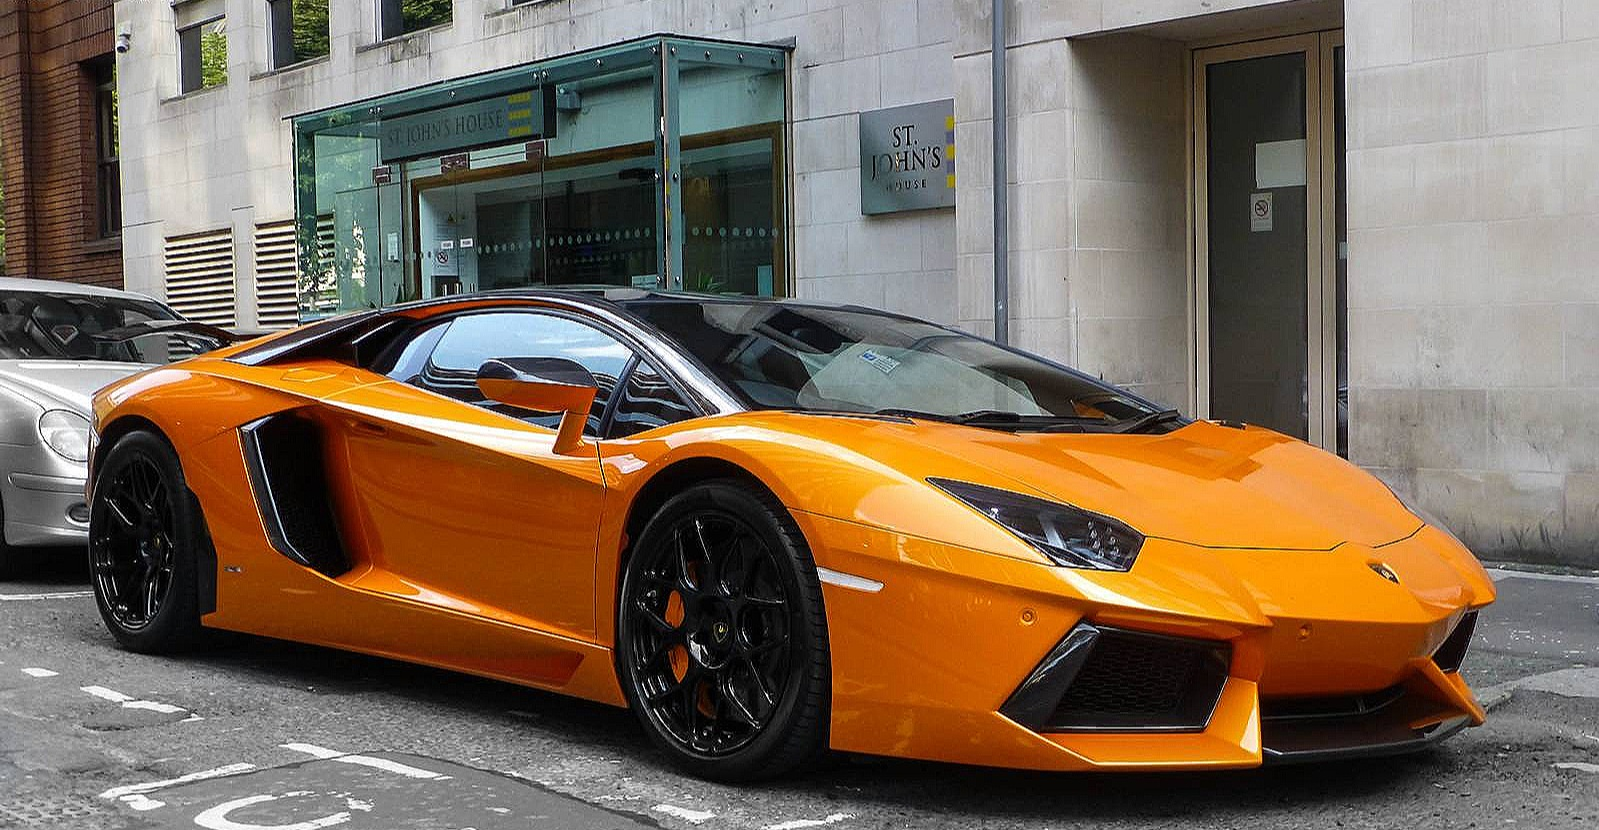 Lamborghini Aventador LP 700-4 - Color | Orange